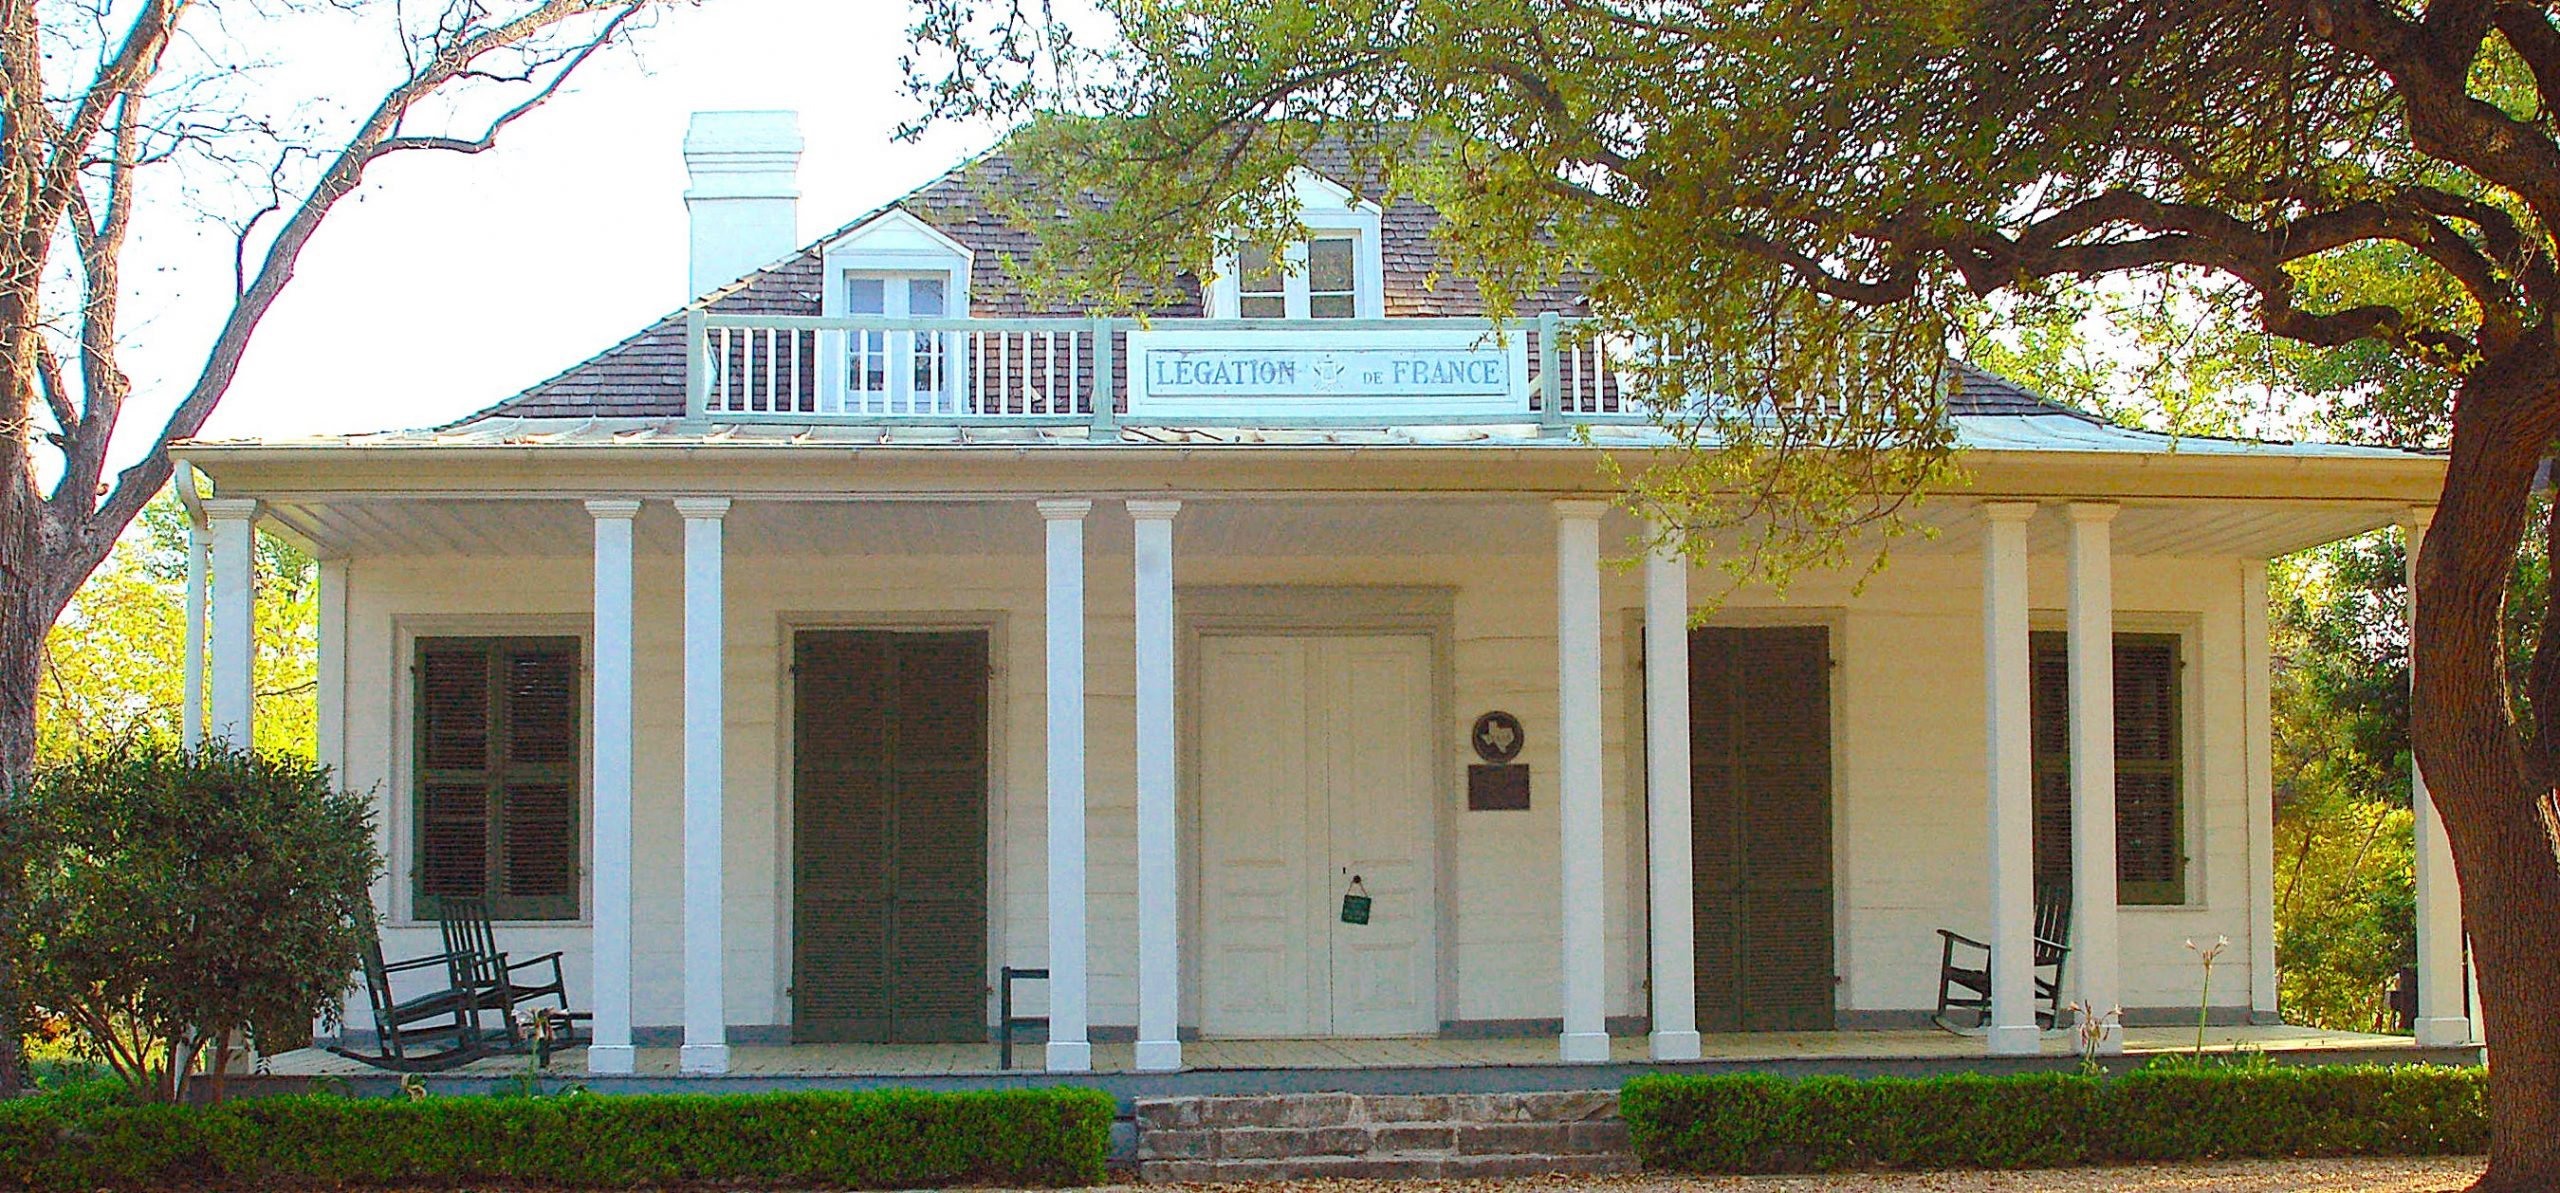 Front of French Legation